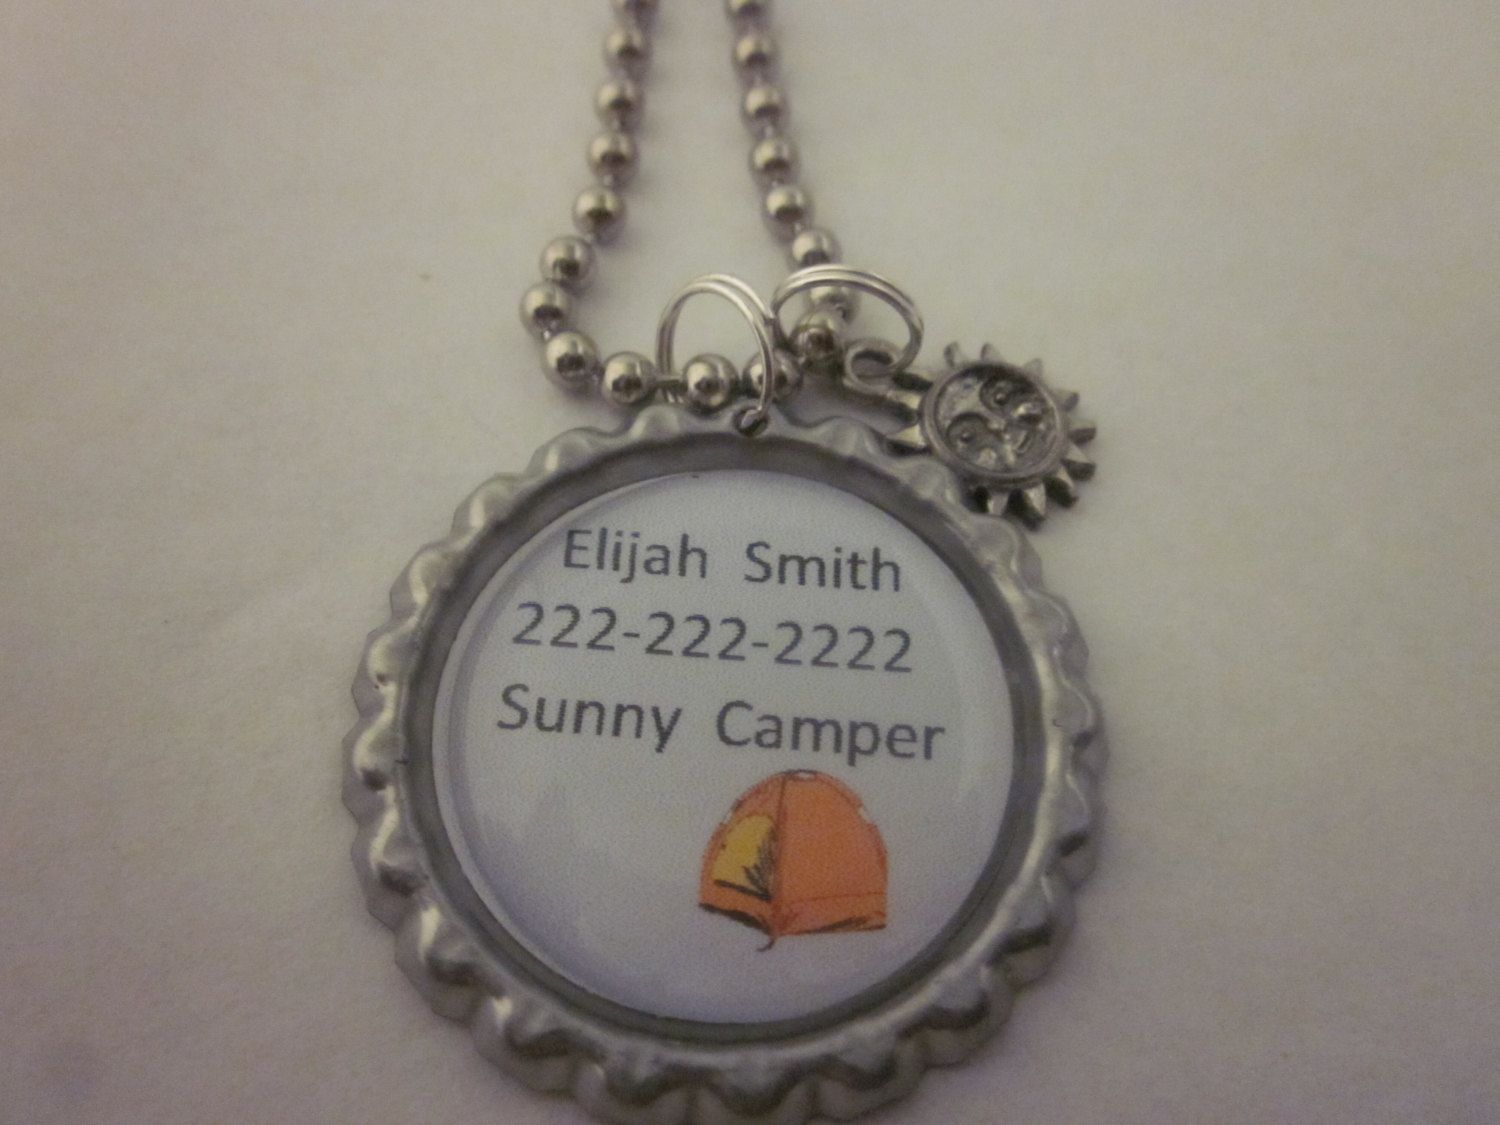 Child identification necklace.